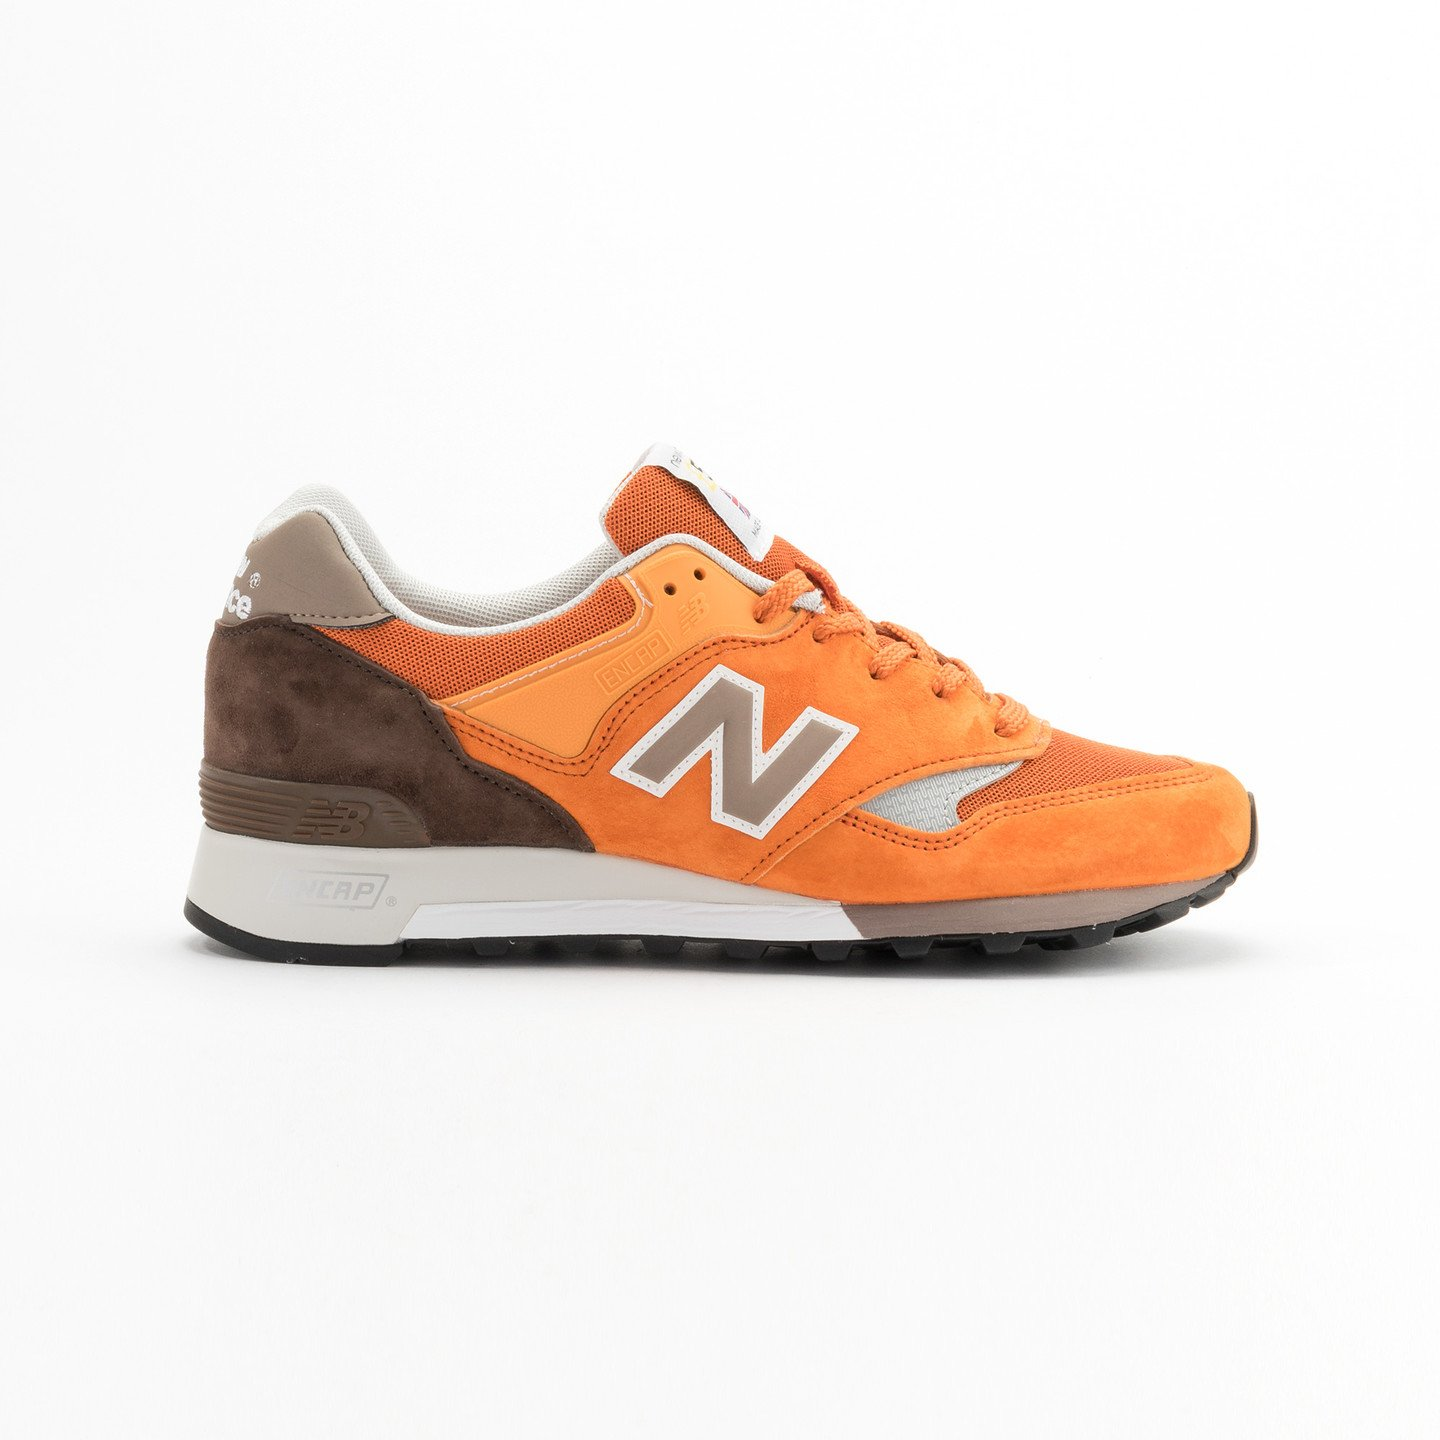 New Balance M577 ETO - Made in England Orange / Brown M577ETO-44